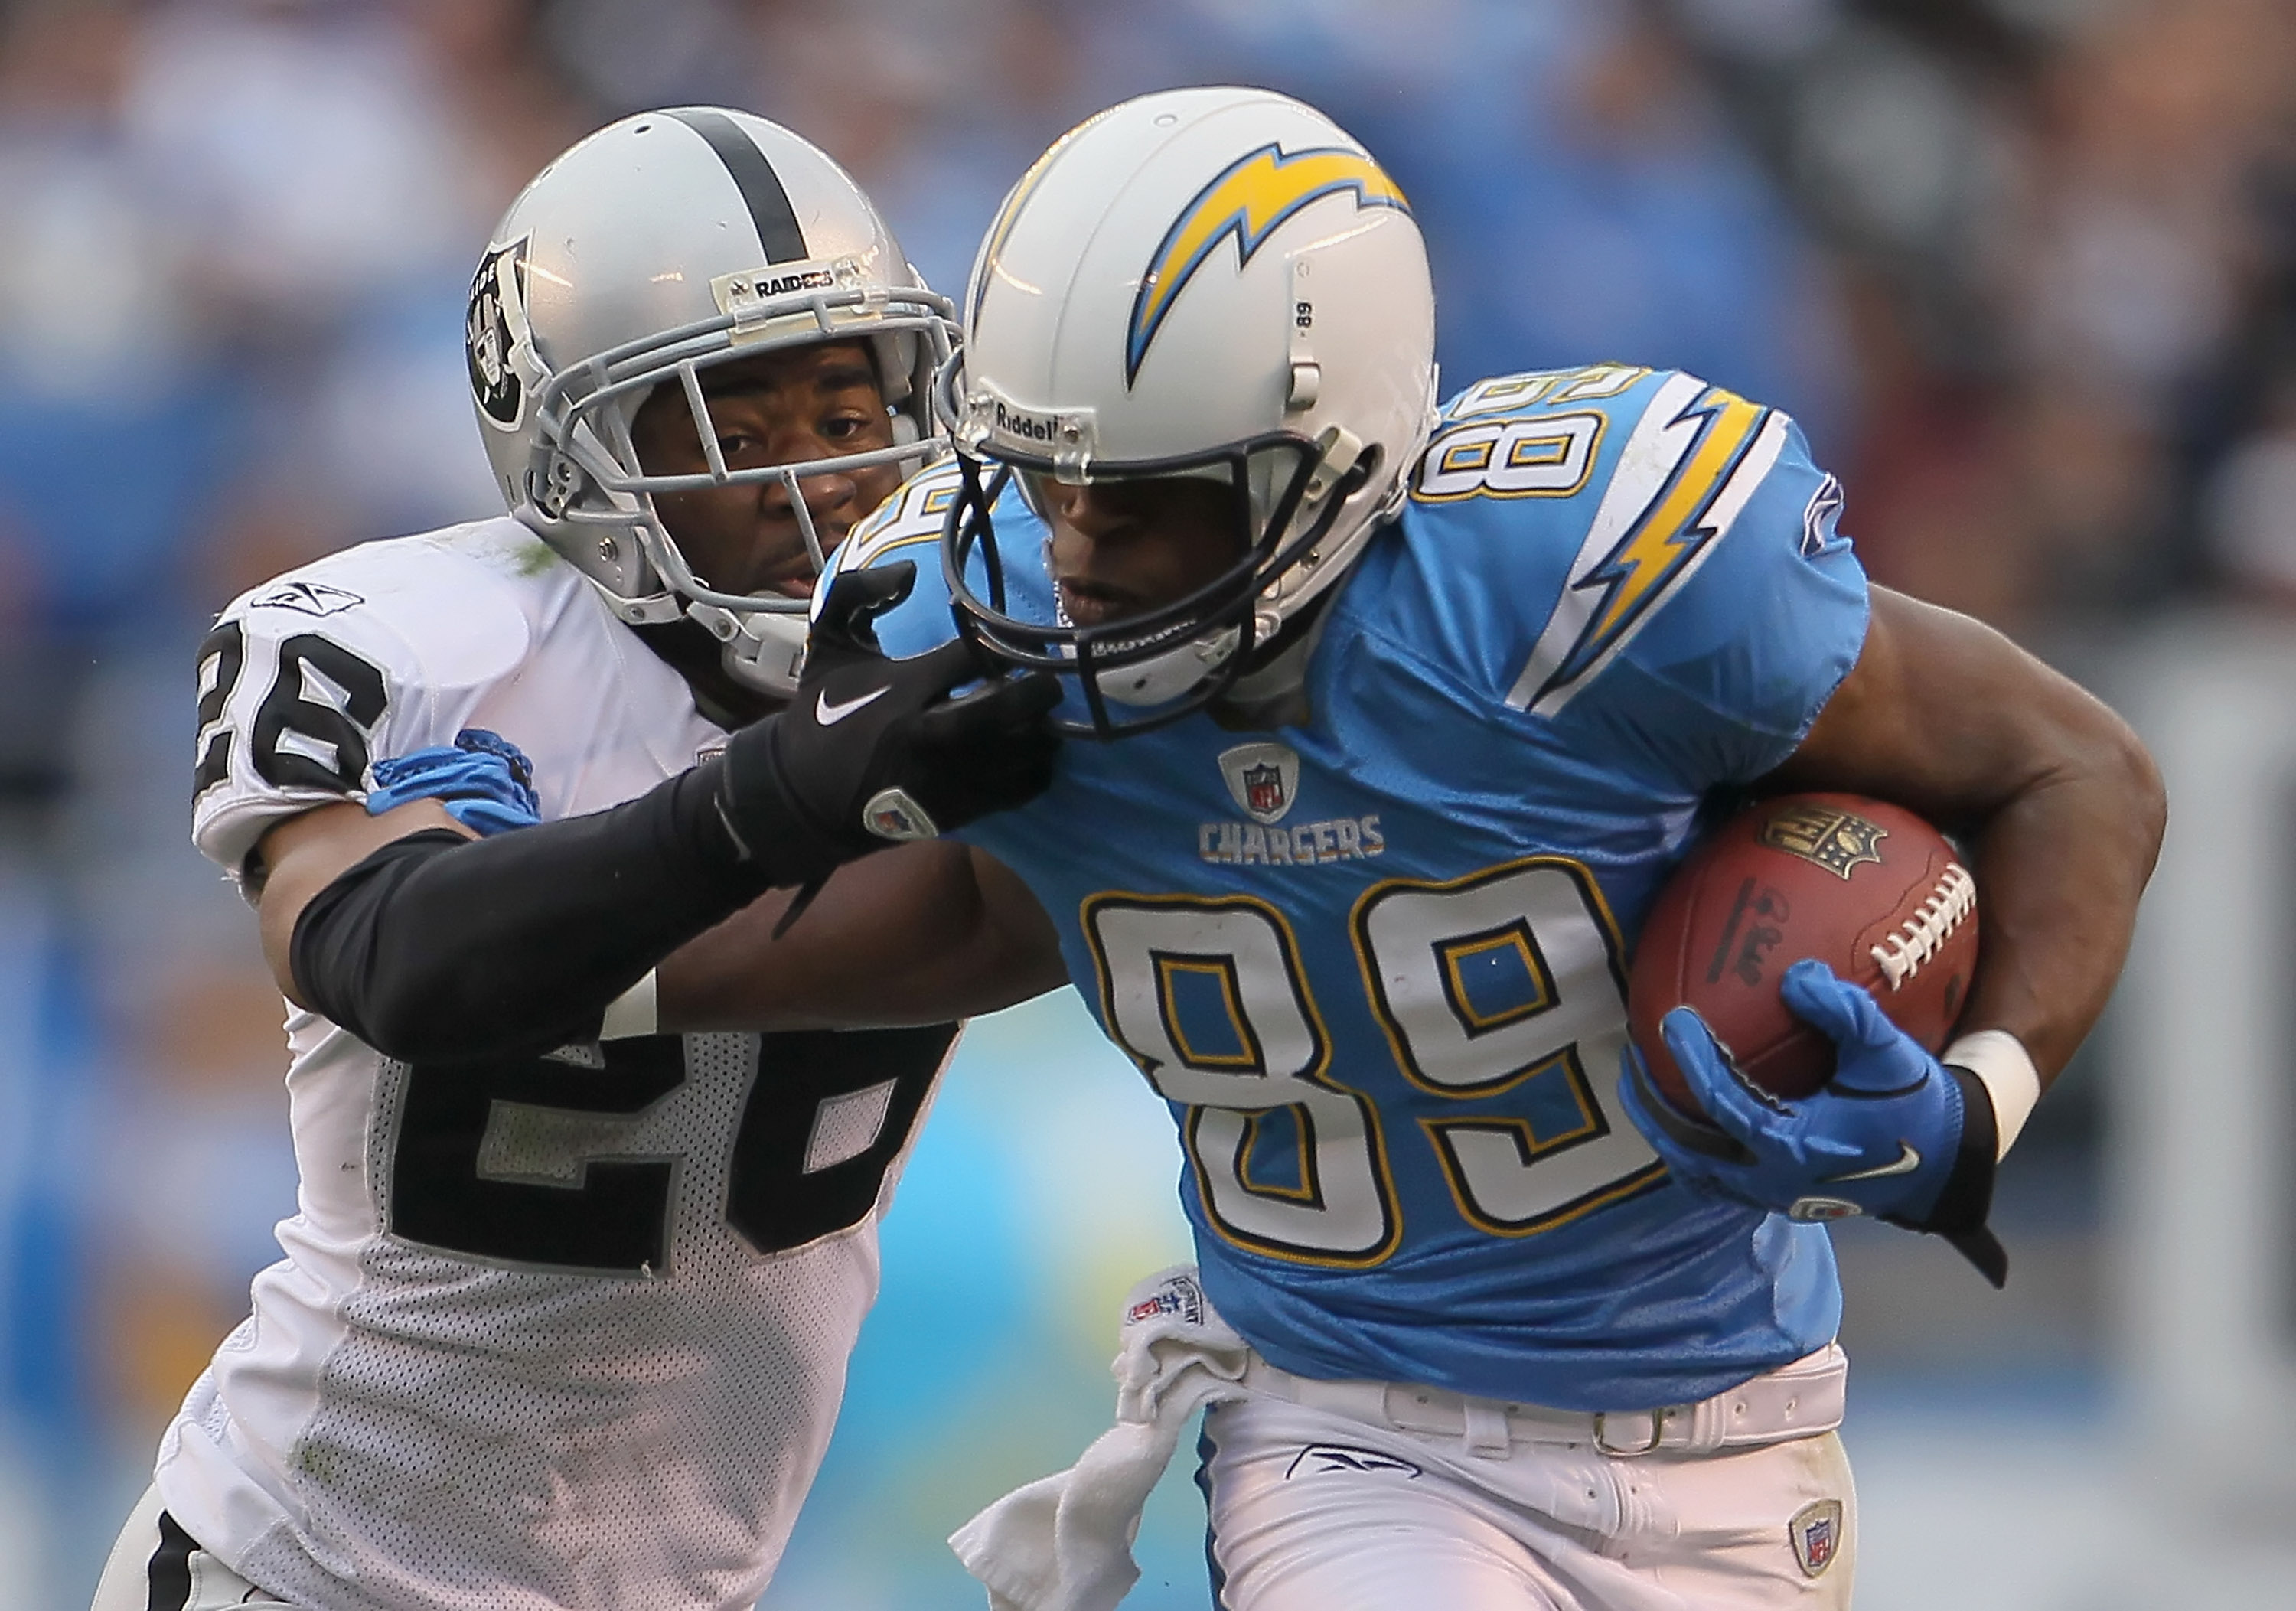 SAN DIEGO - DECEMBER 05:  Stanford Routt #26 of the Oakland Raiders grabs the face mask of Seyi Ajirotutu #89 of the San Diego Chargers in an attempt to bring him down in the third quarter at Qualcomm Stadium on December 5, 2010 in San Diego, California.